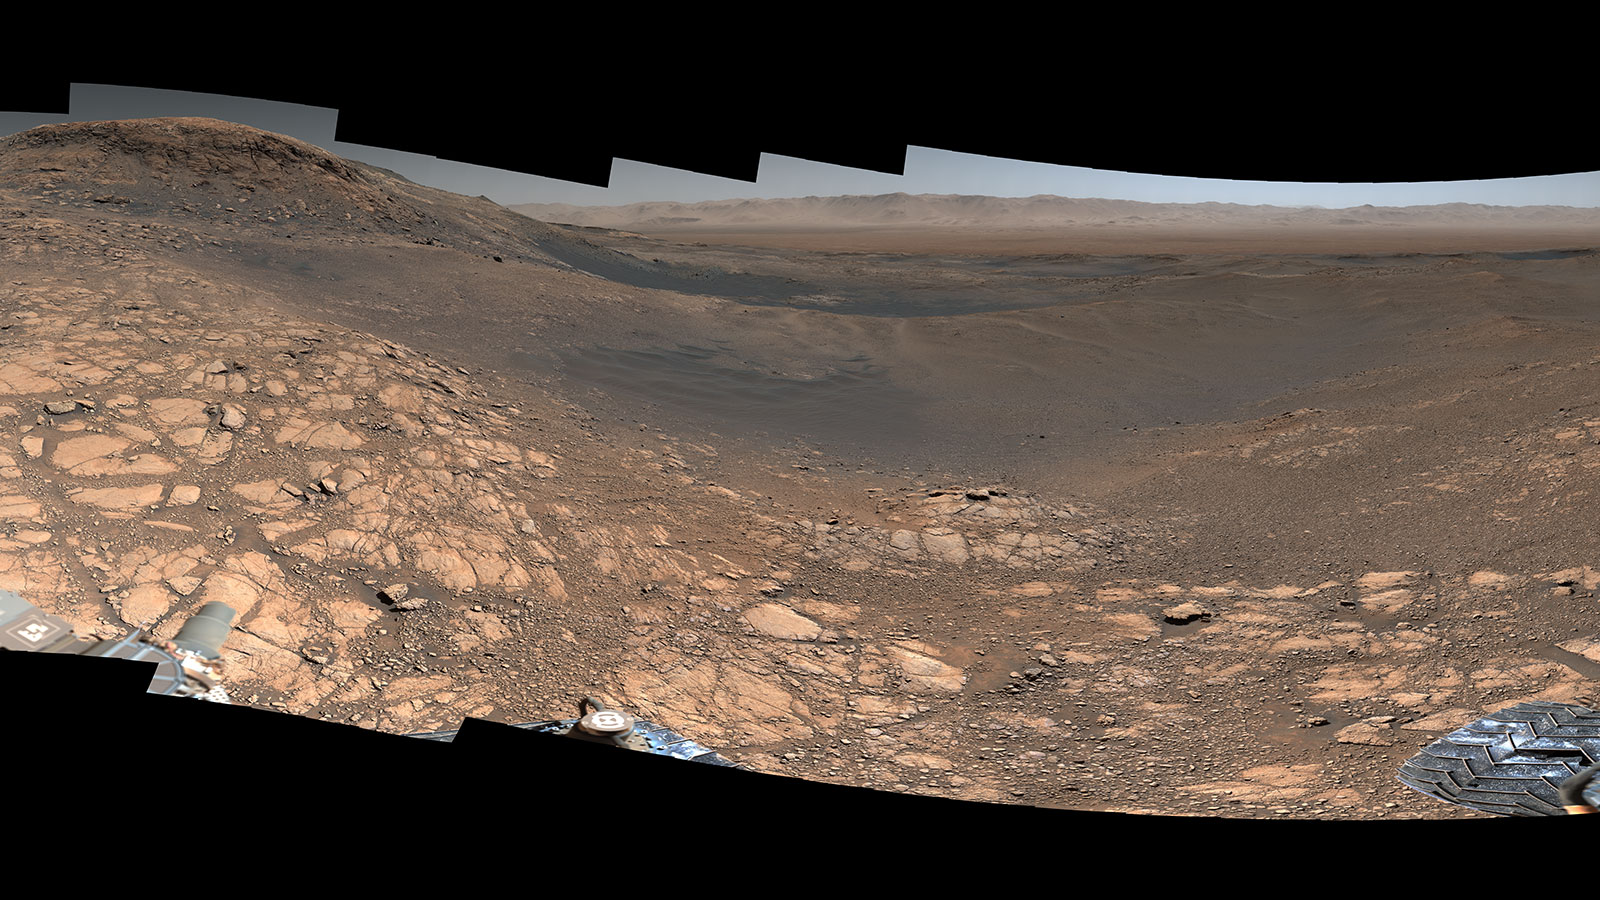 Curiosity's 1.8-Billion-Pixel Panorama